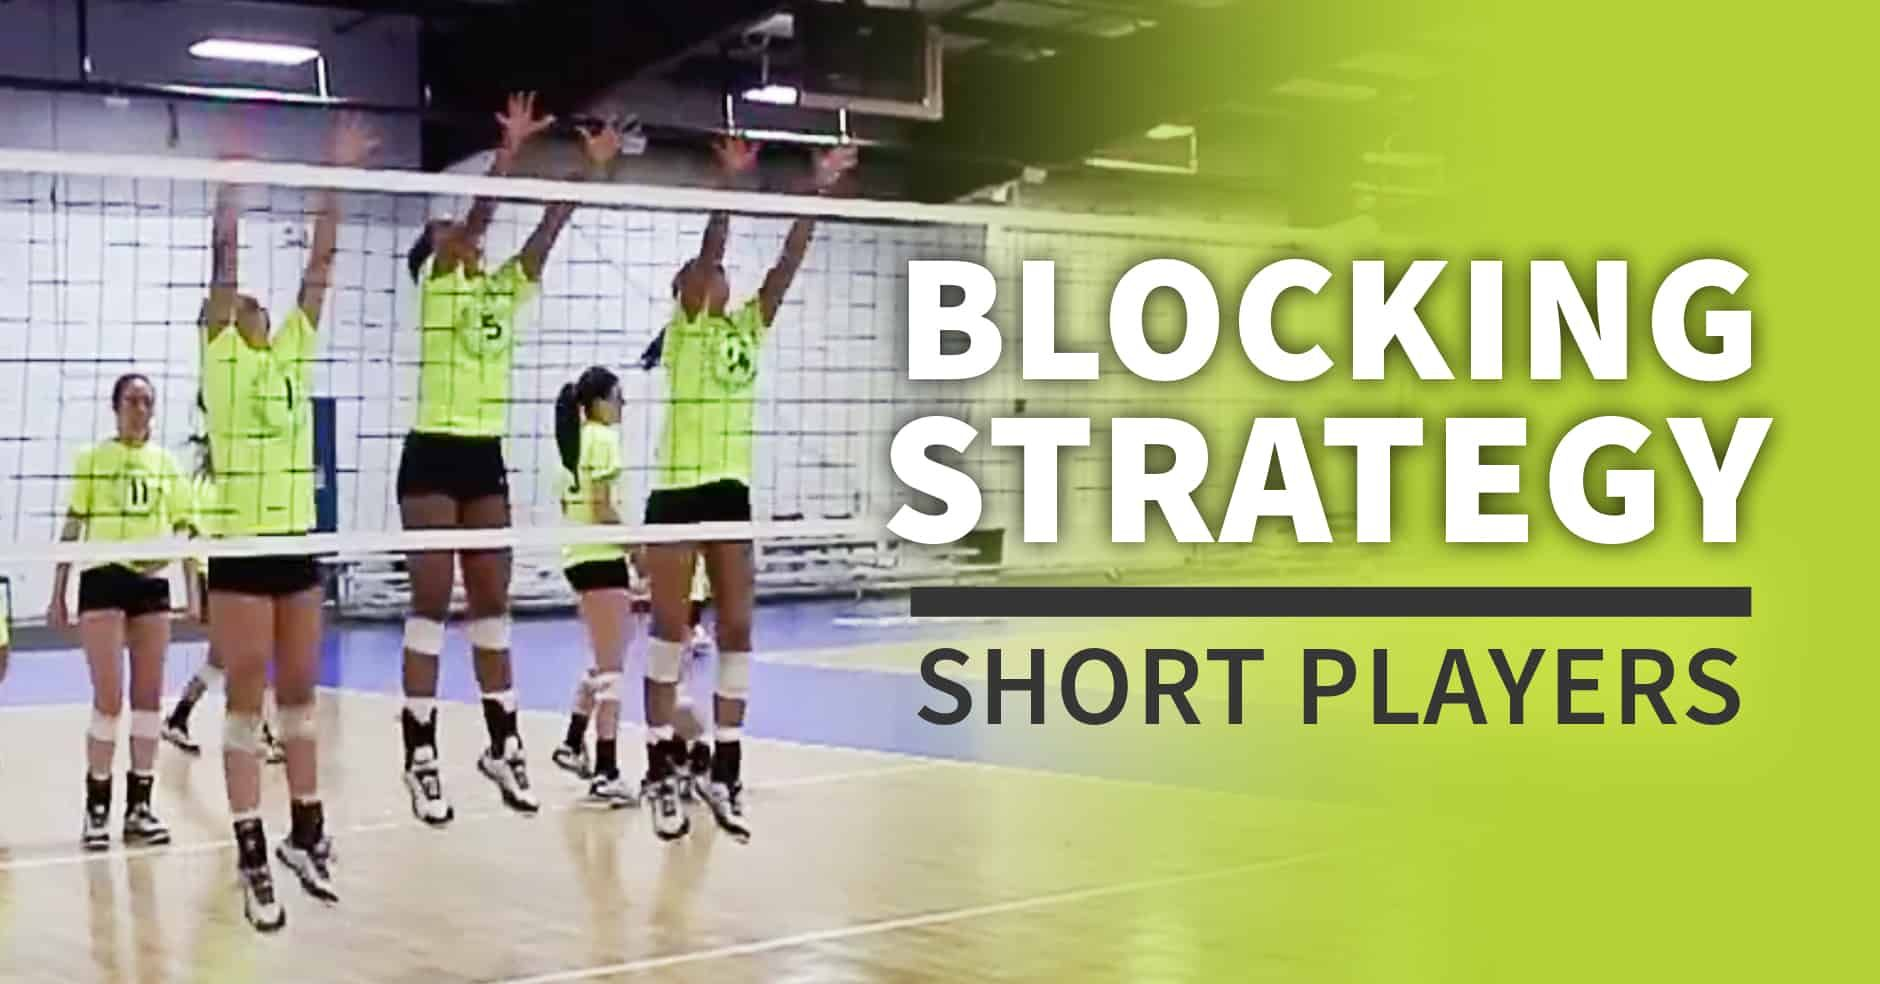 Blocking Strategies For Short Players The Art Of Coaching Volleyball Volleyball Workouts Coaching Volleyball Volleyball Training